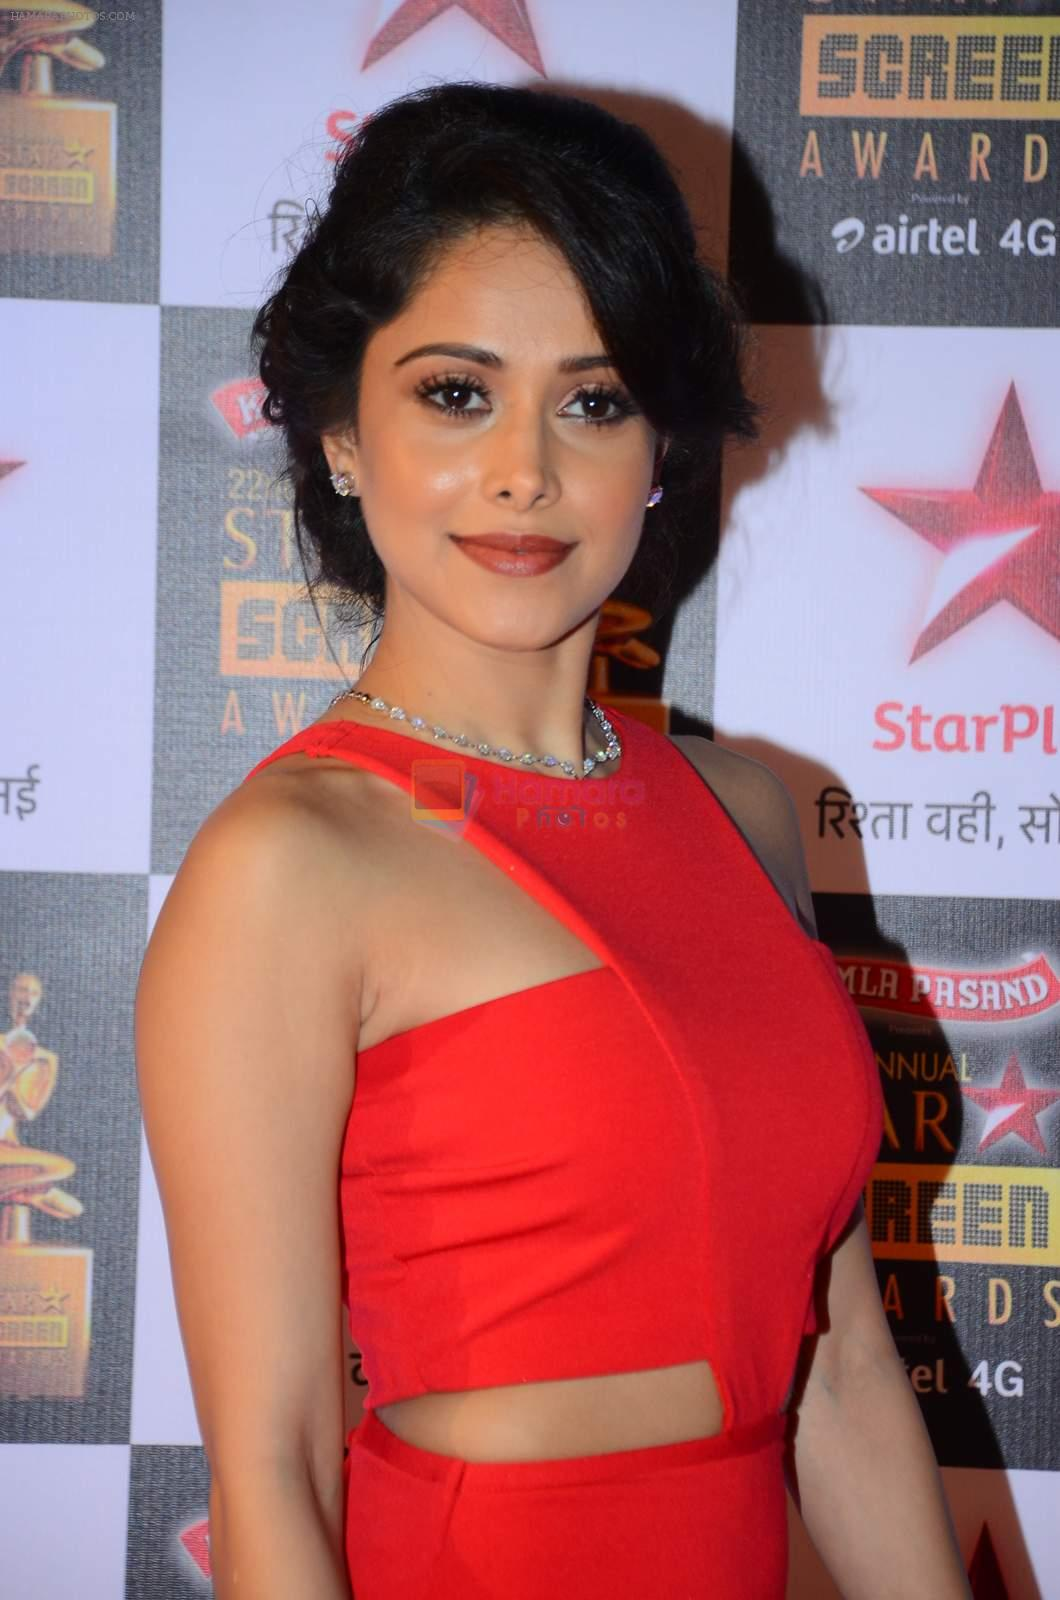 Sonu Ke Tittu Ki Sweety actress Nushrat Bharucha Sexy & HOT Photos